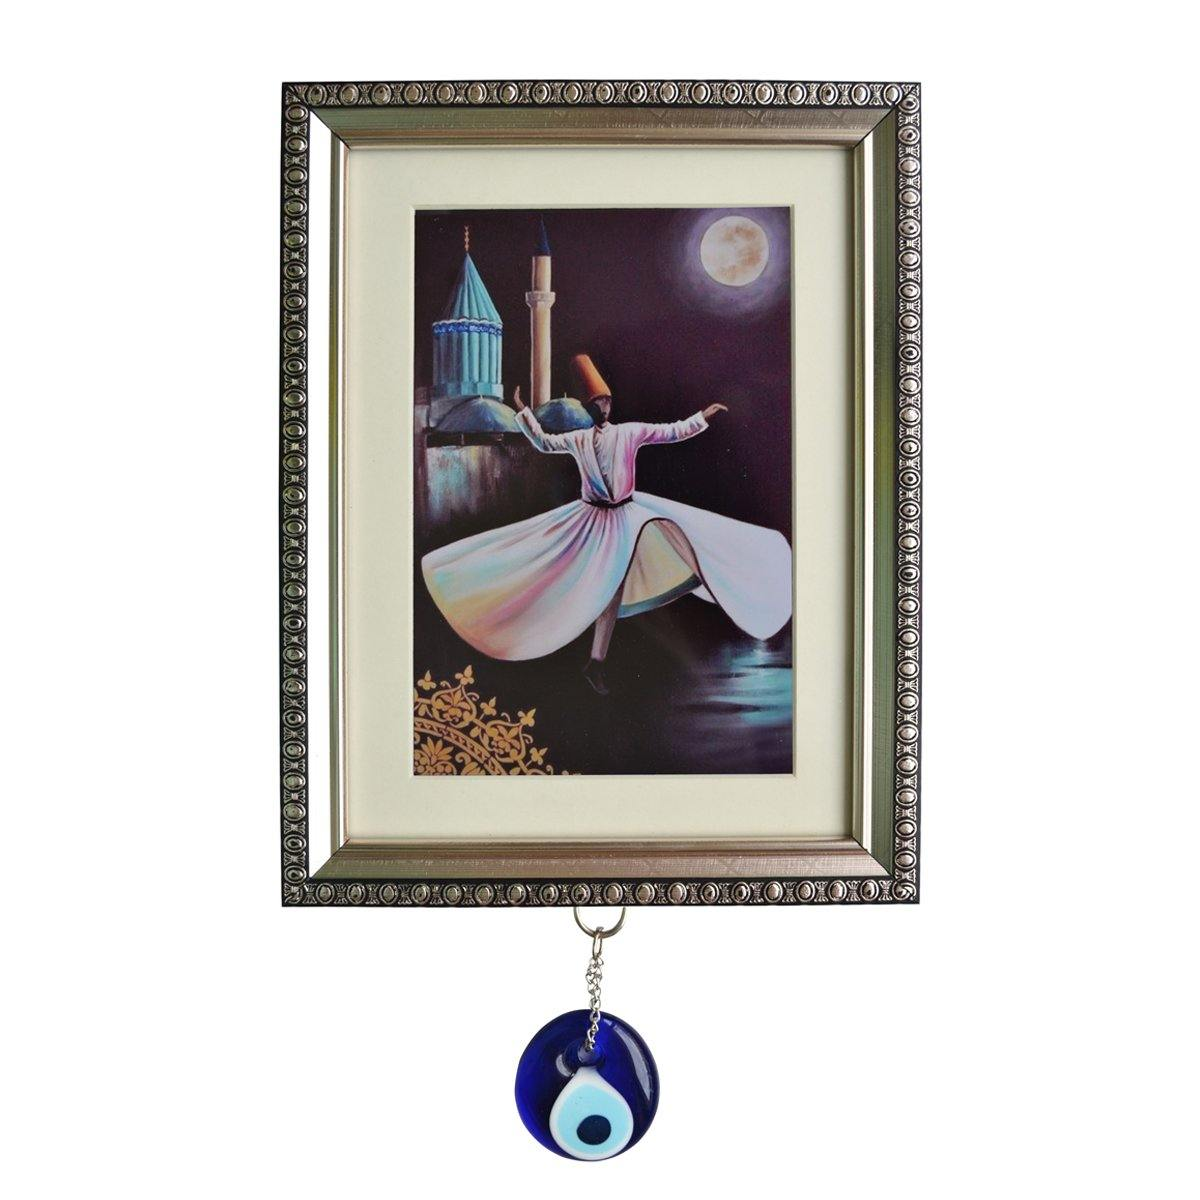 Dervish Moonlight Frame